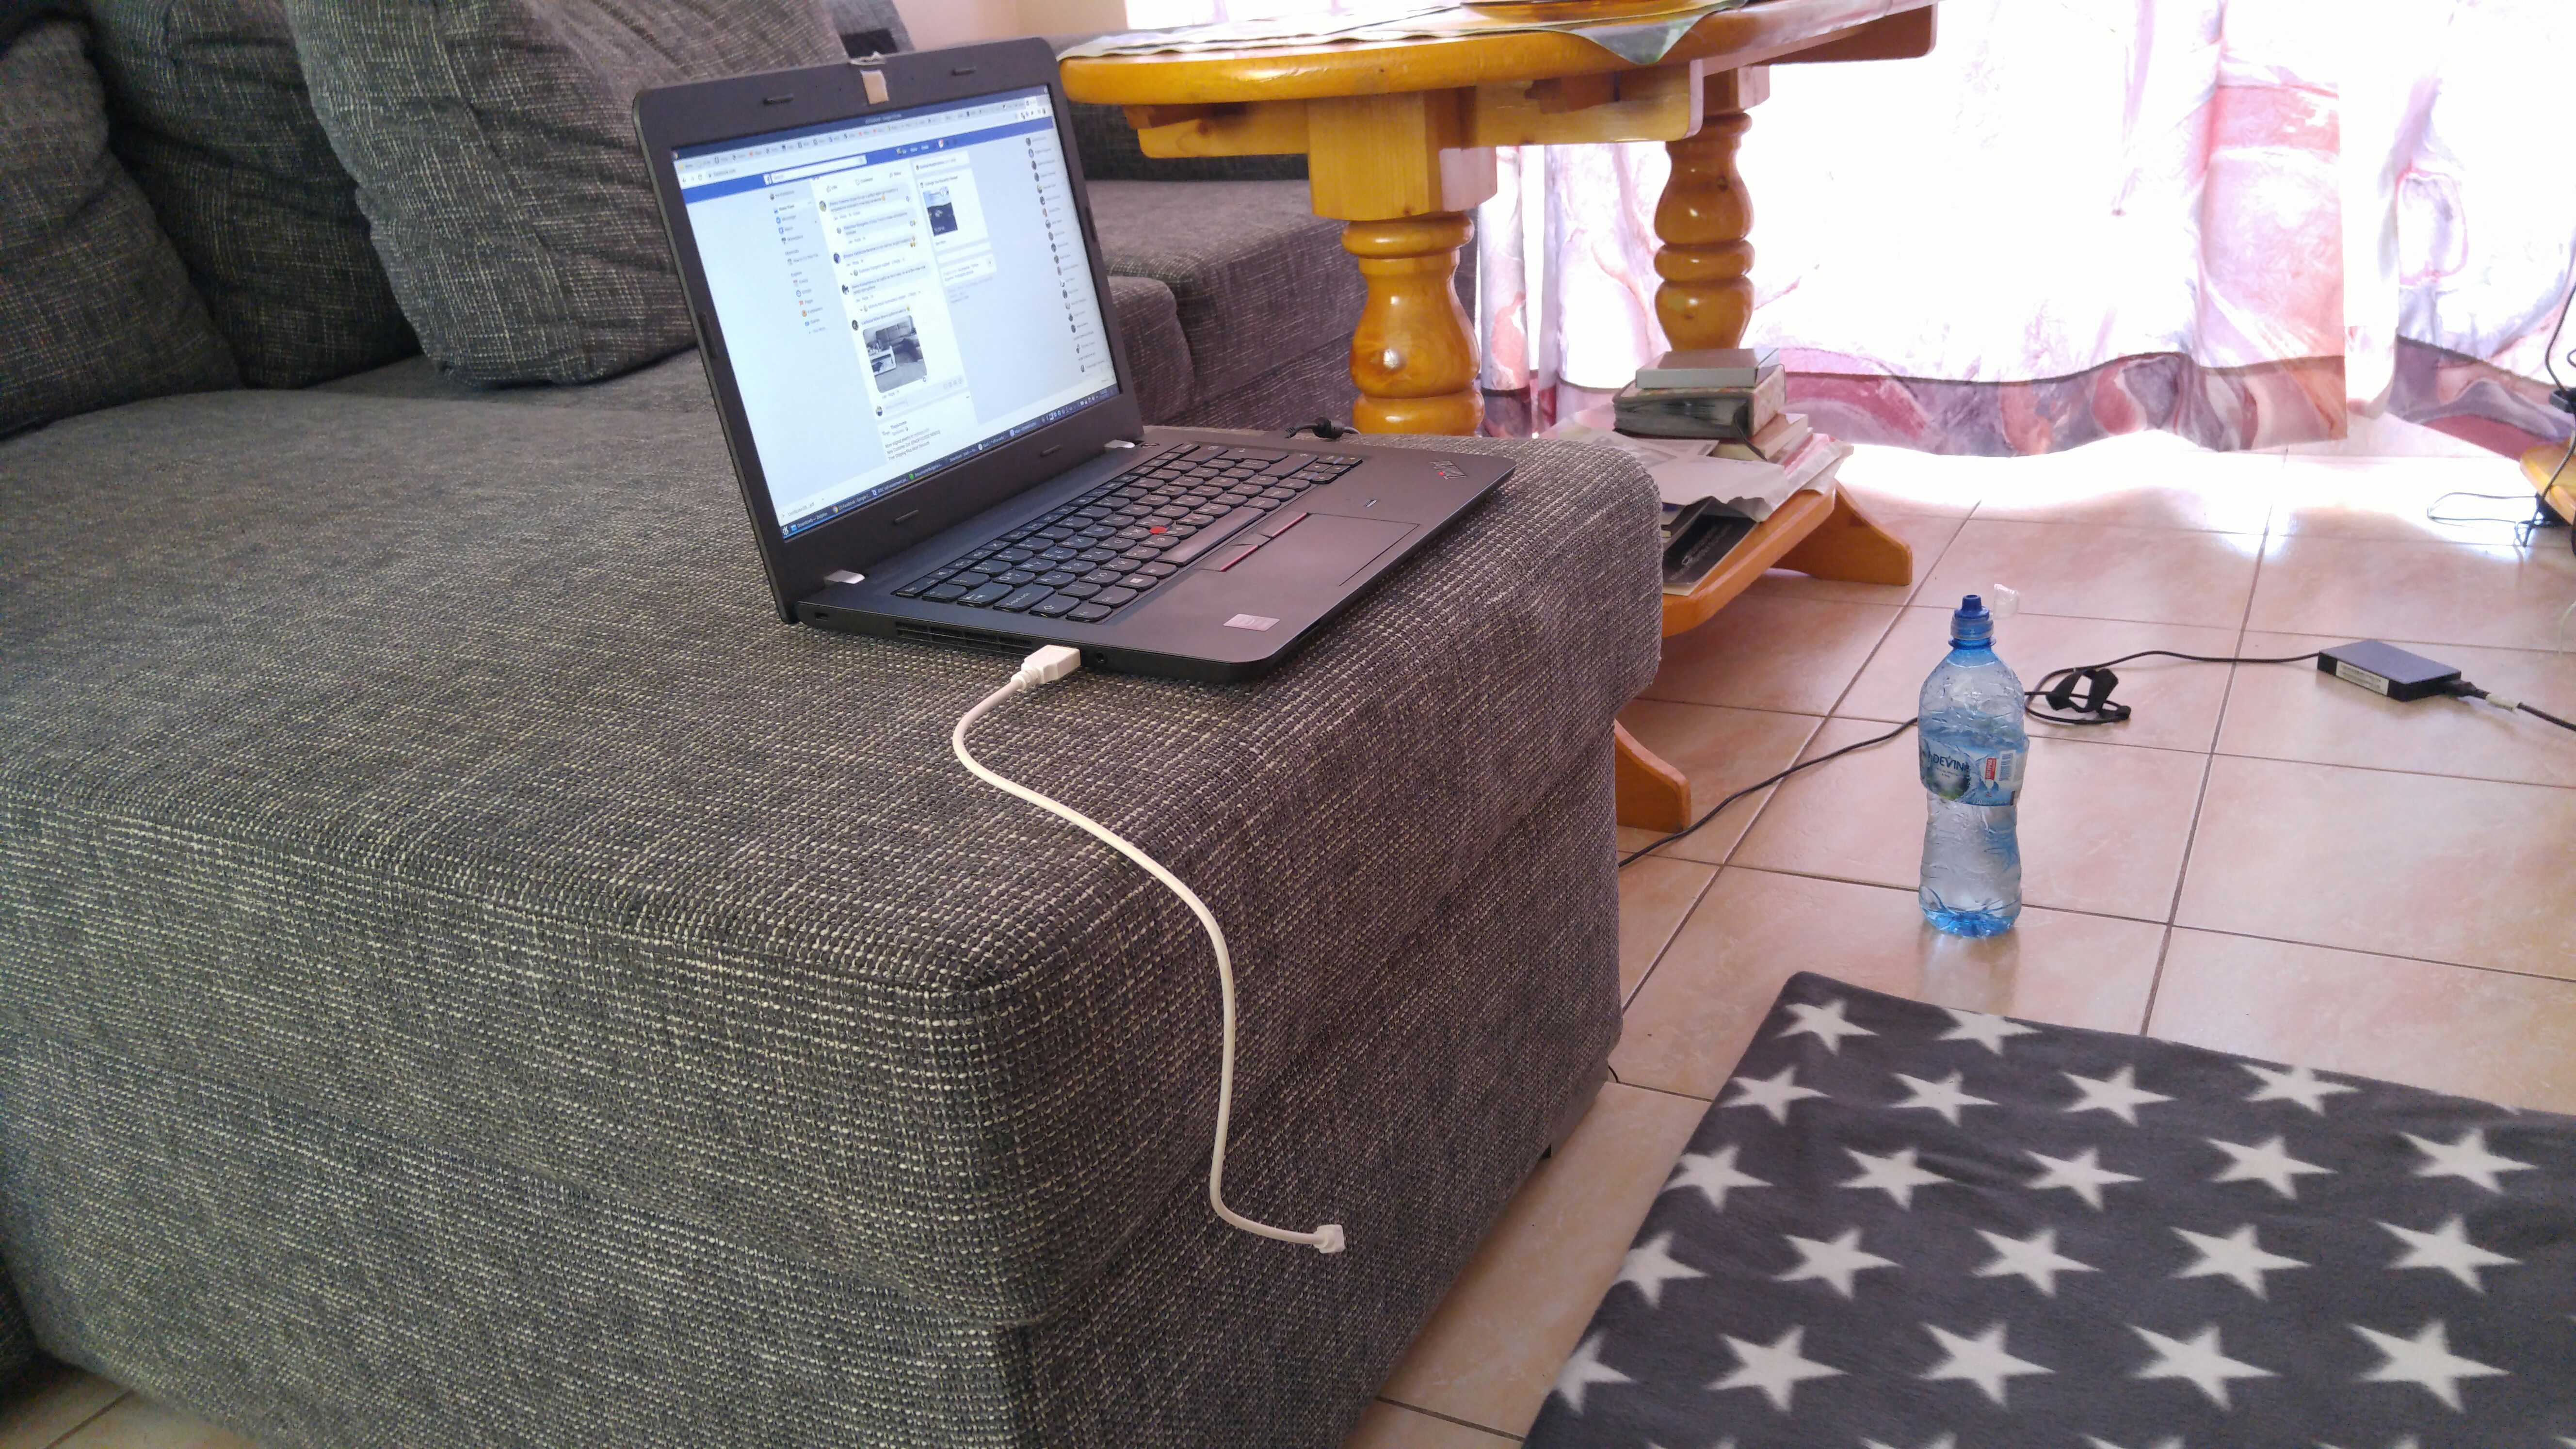 Work from home: non-expert tips and tricks